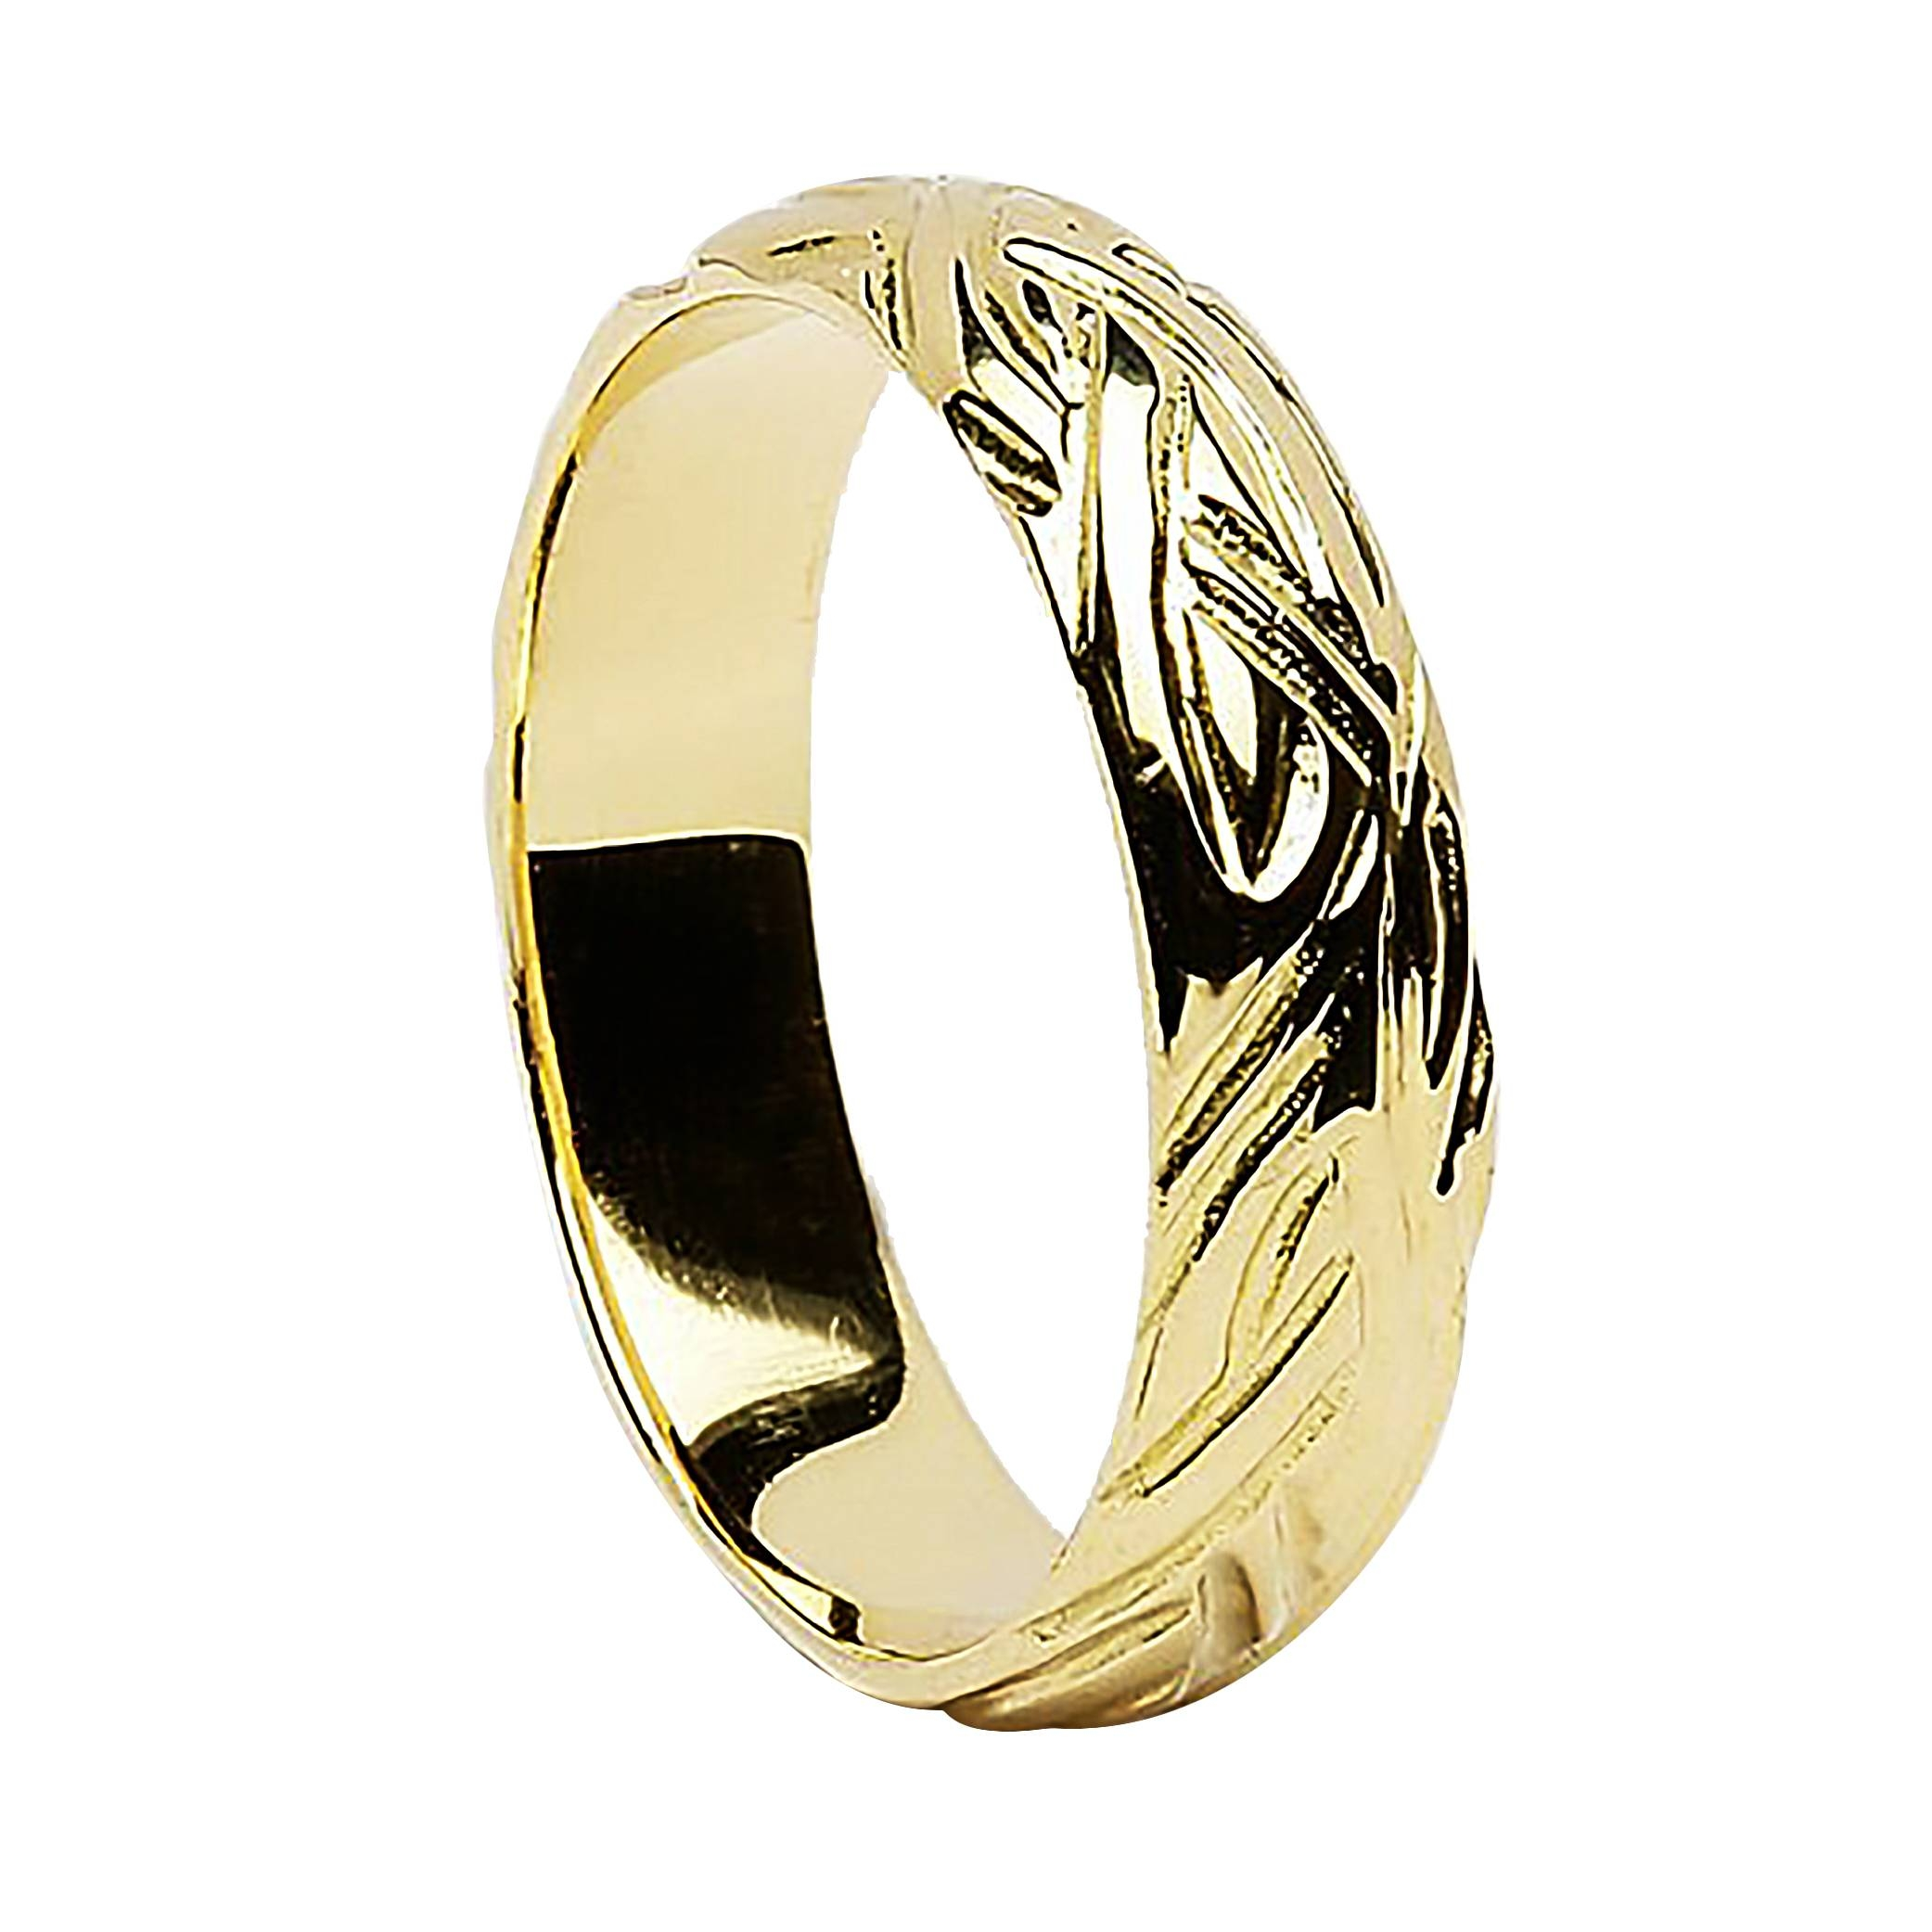 Irish Gold Wedding Ring – Livia – 18K Gold Throughout 18K Gold Wedding Rings (View 11 of 15)